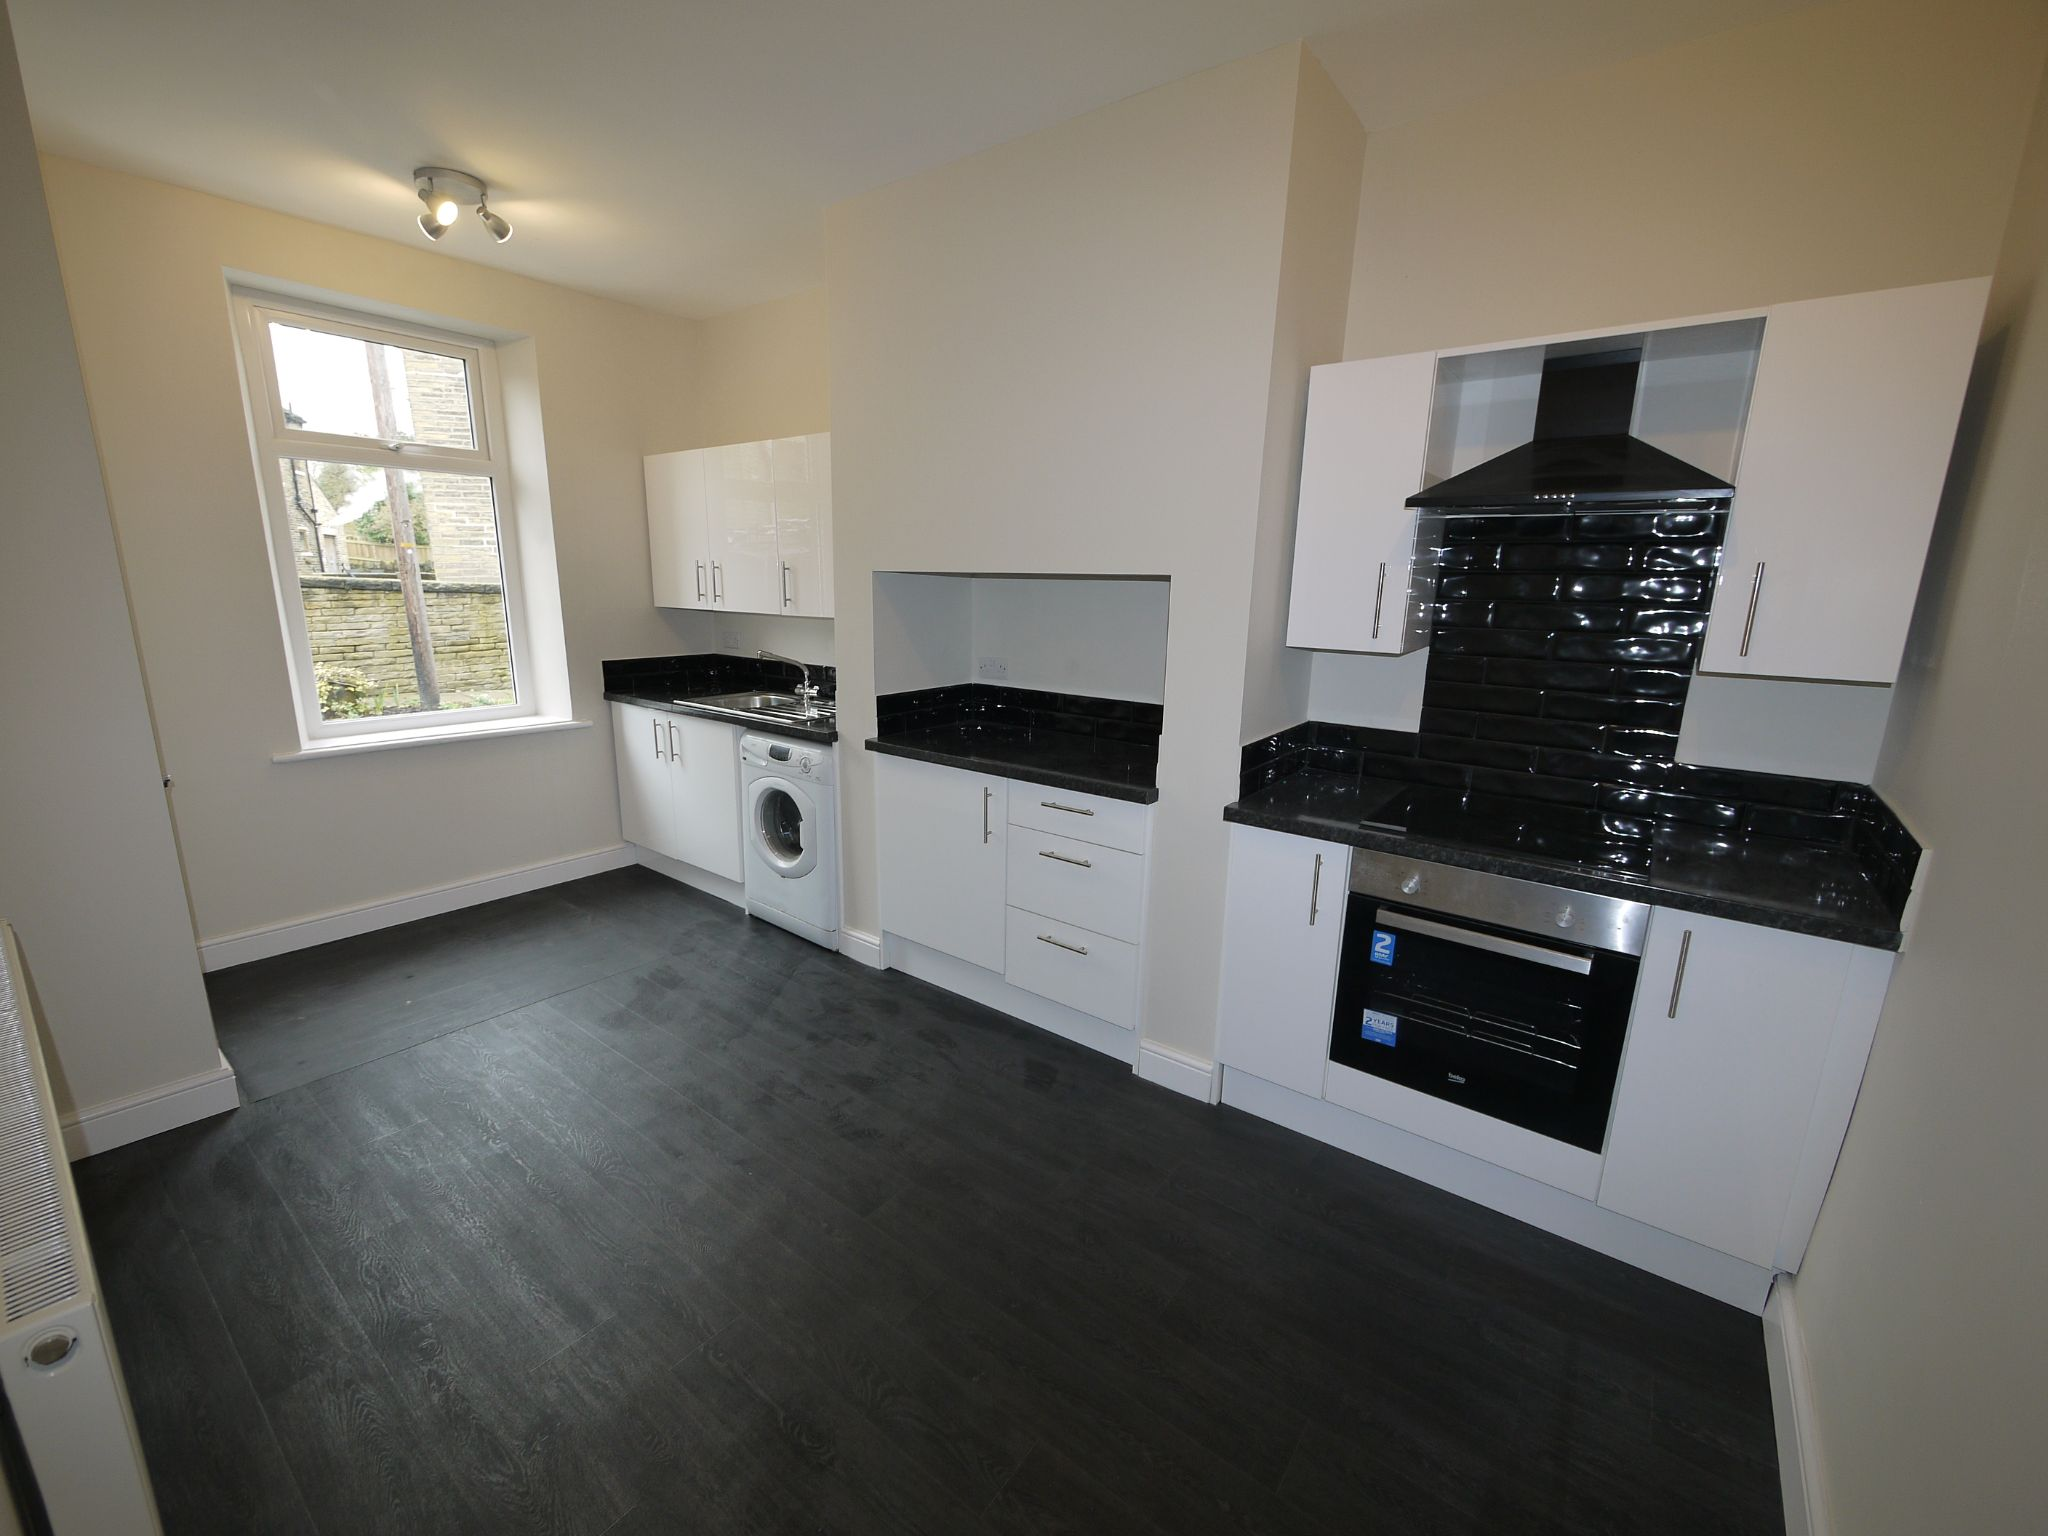 2 bedroom end terraced house SSTC in Brighouse - Kitchen 2.